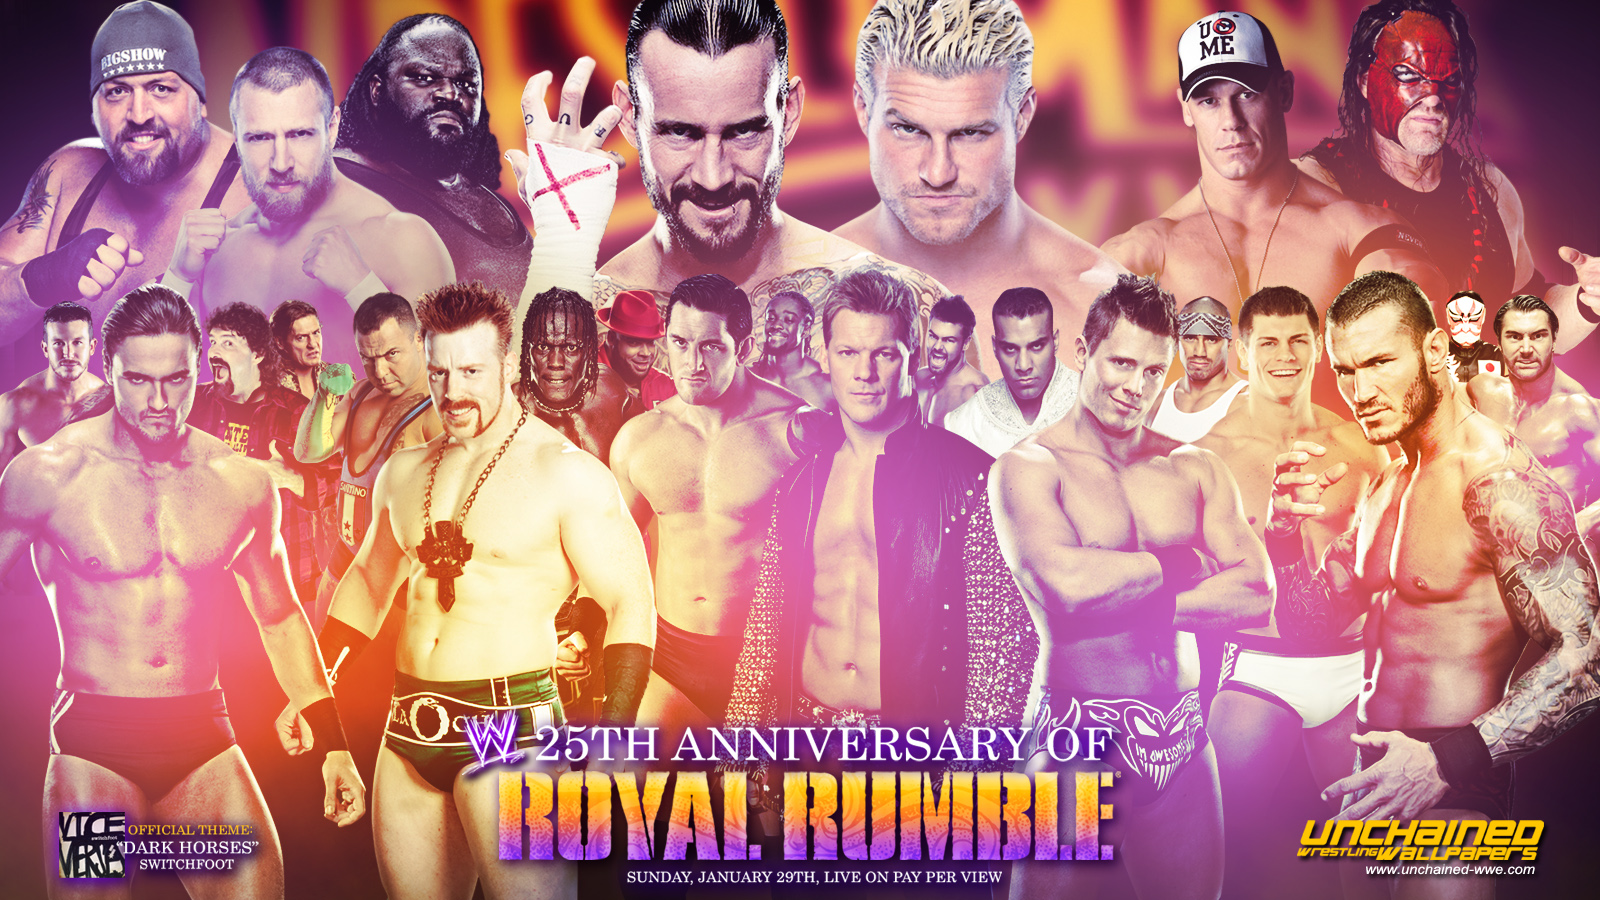 Royal Rumble | Matches, Results, Videos, Photos, and More